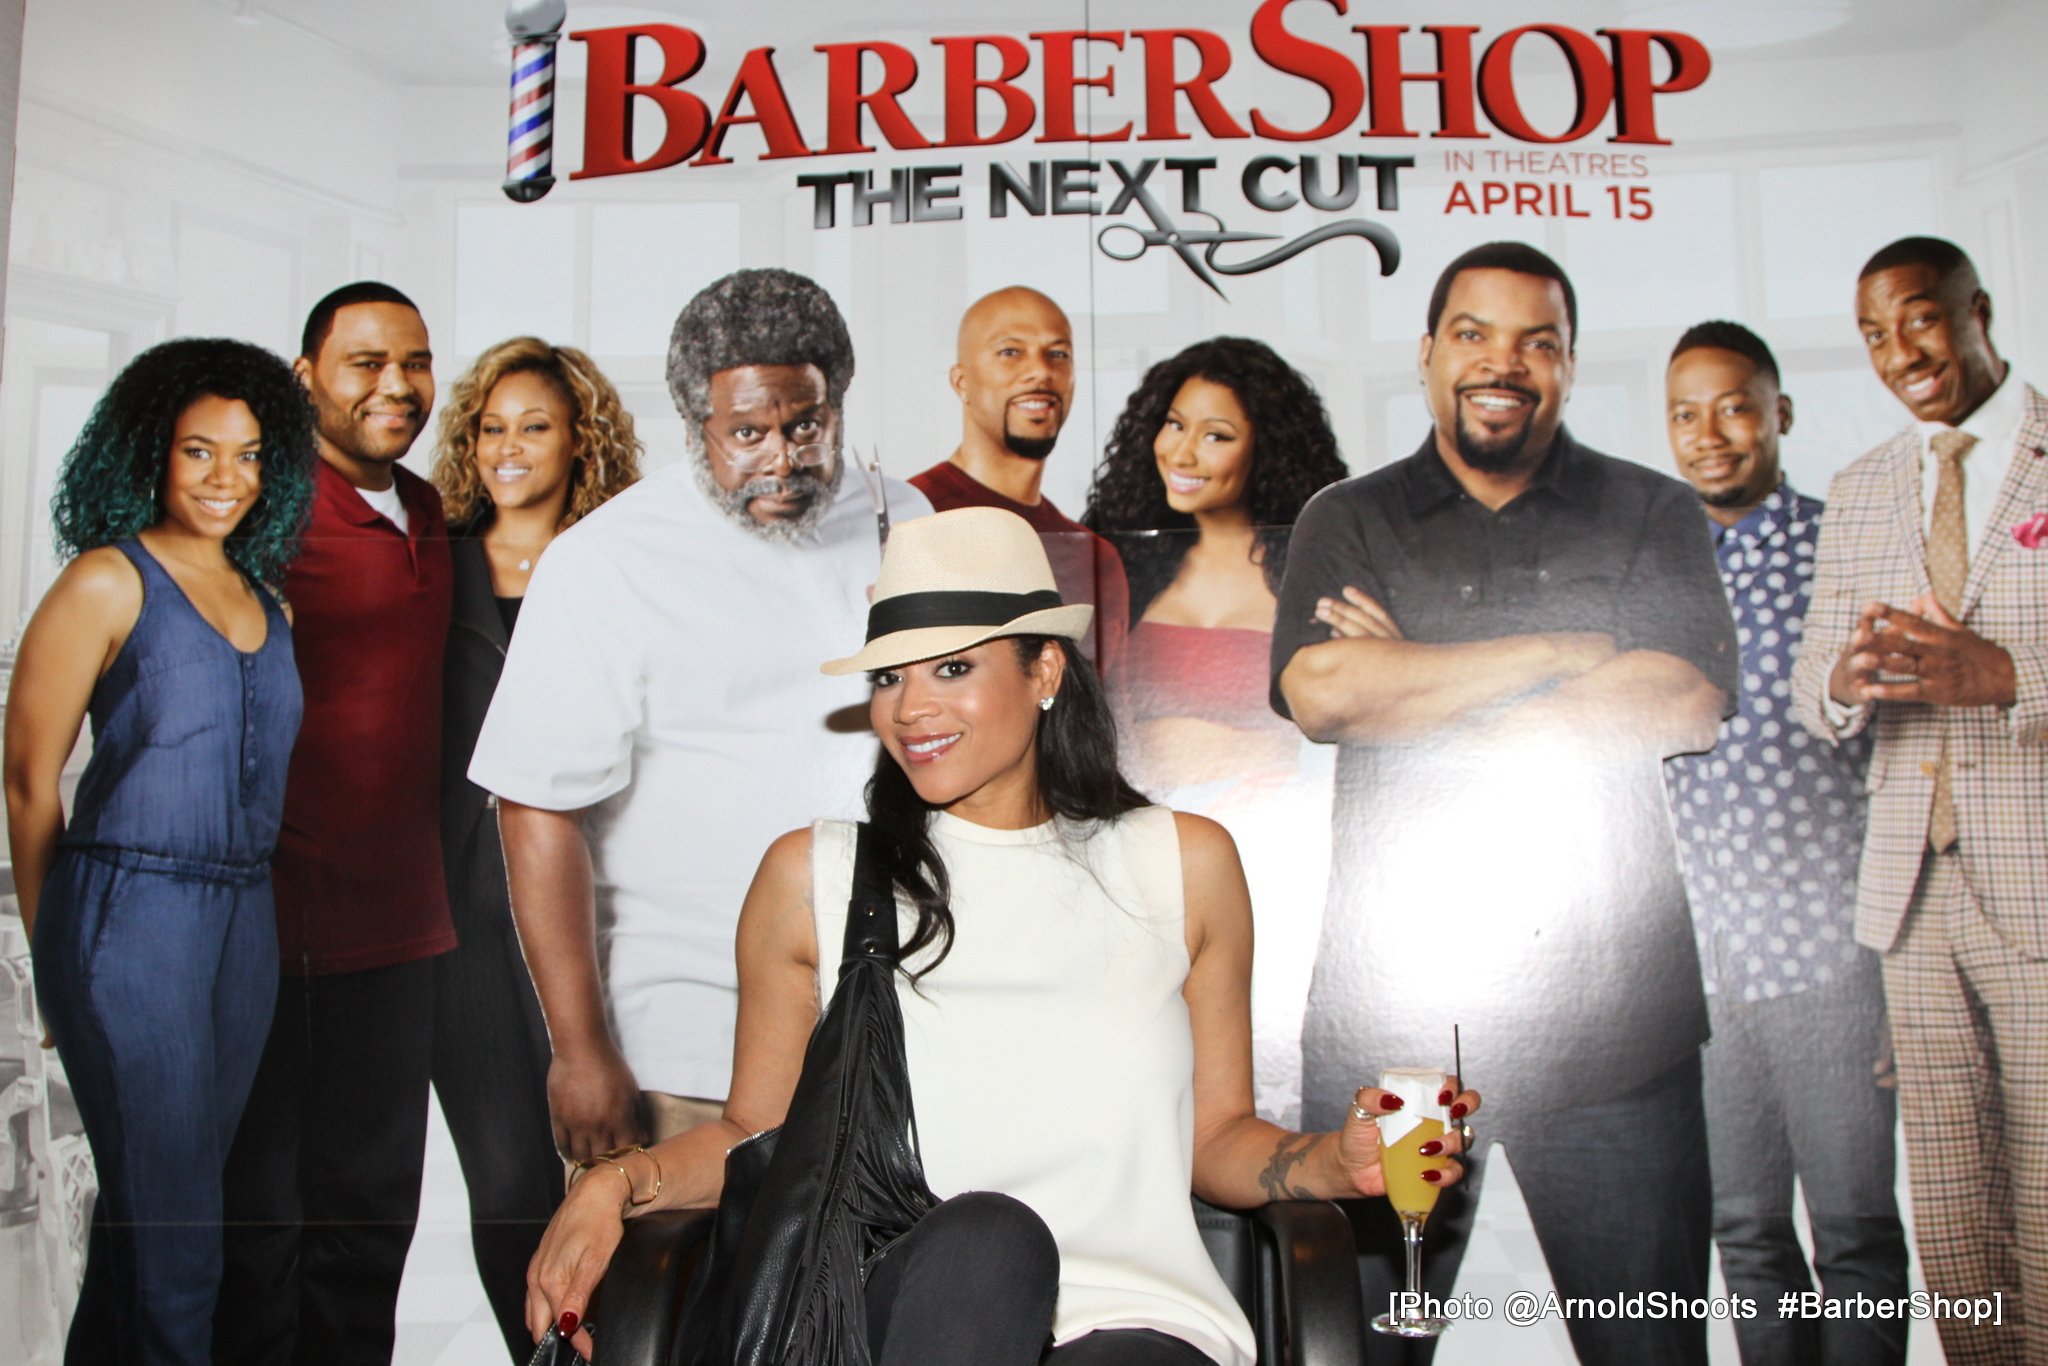 WEST HOLLYWOOD, CA - FEBRUARY 13: A general view at BarberShop The Next Cut Private Screening at The London Hotel on Saturday, February 13, 2016 in West Hollywood, California. (Photo by A Turner Archives)